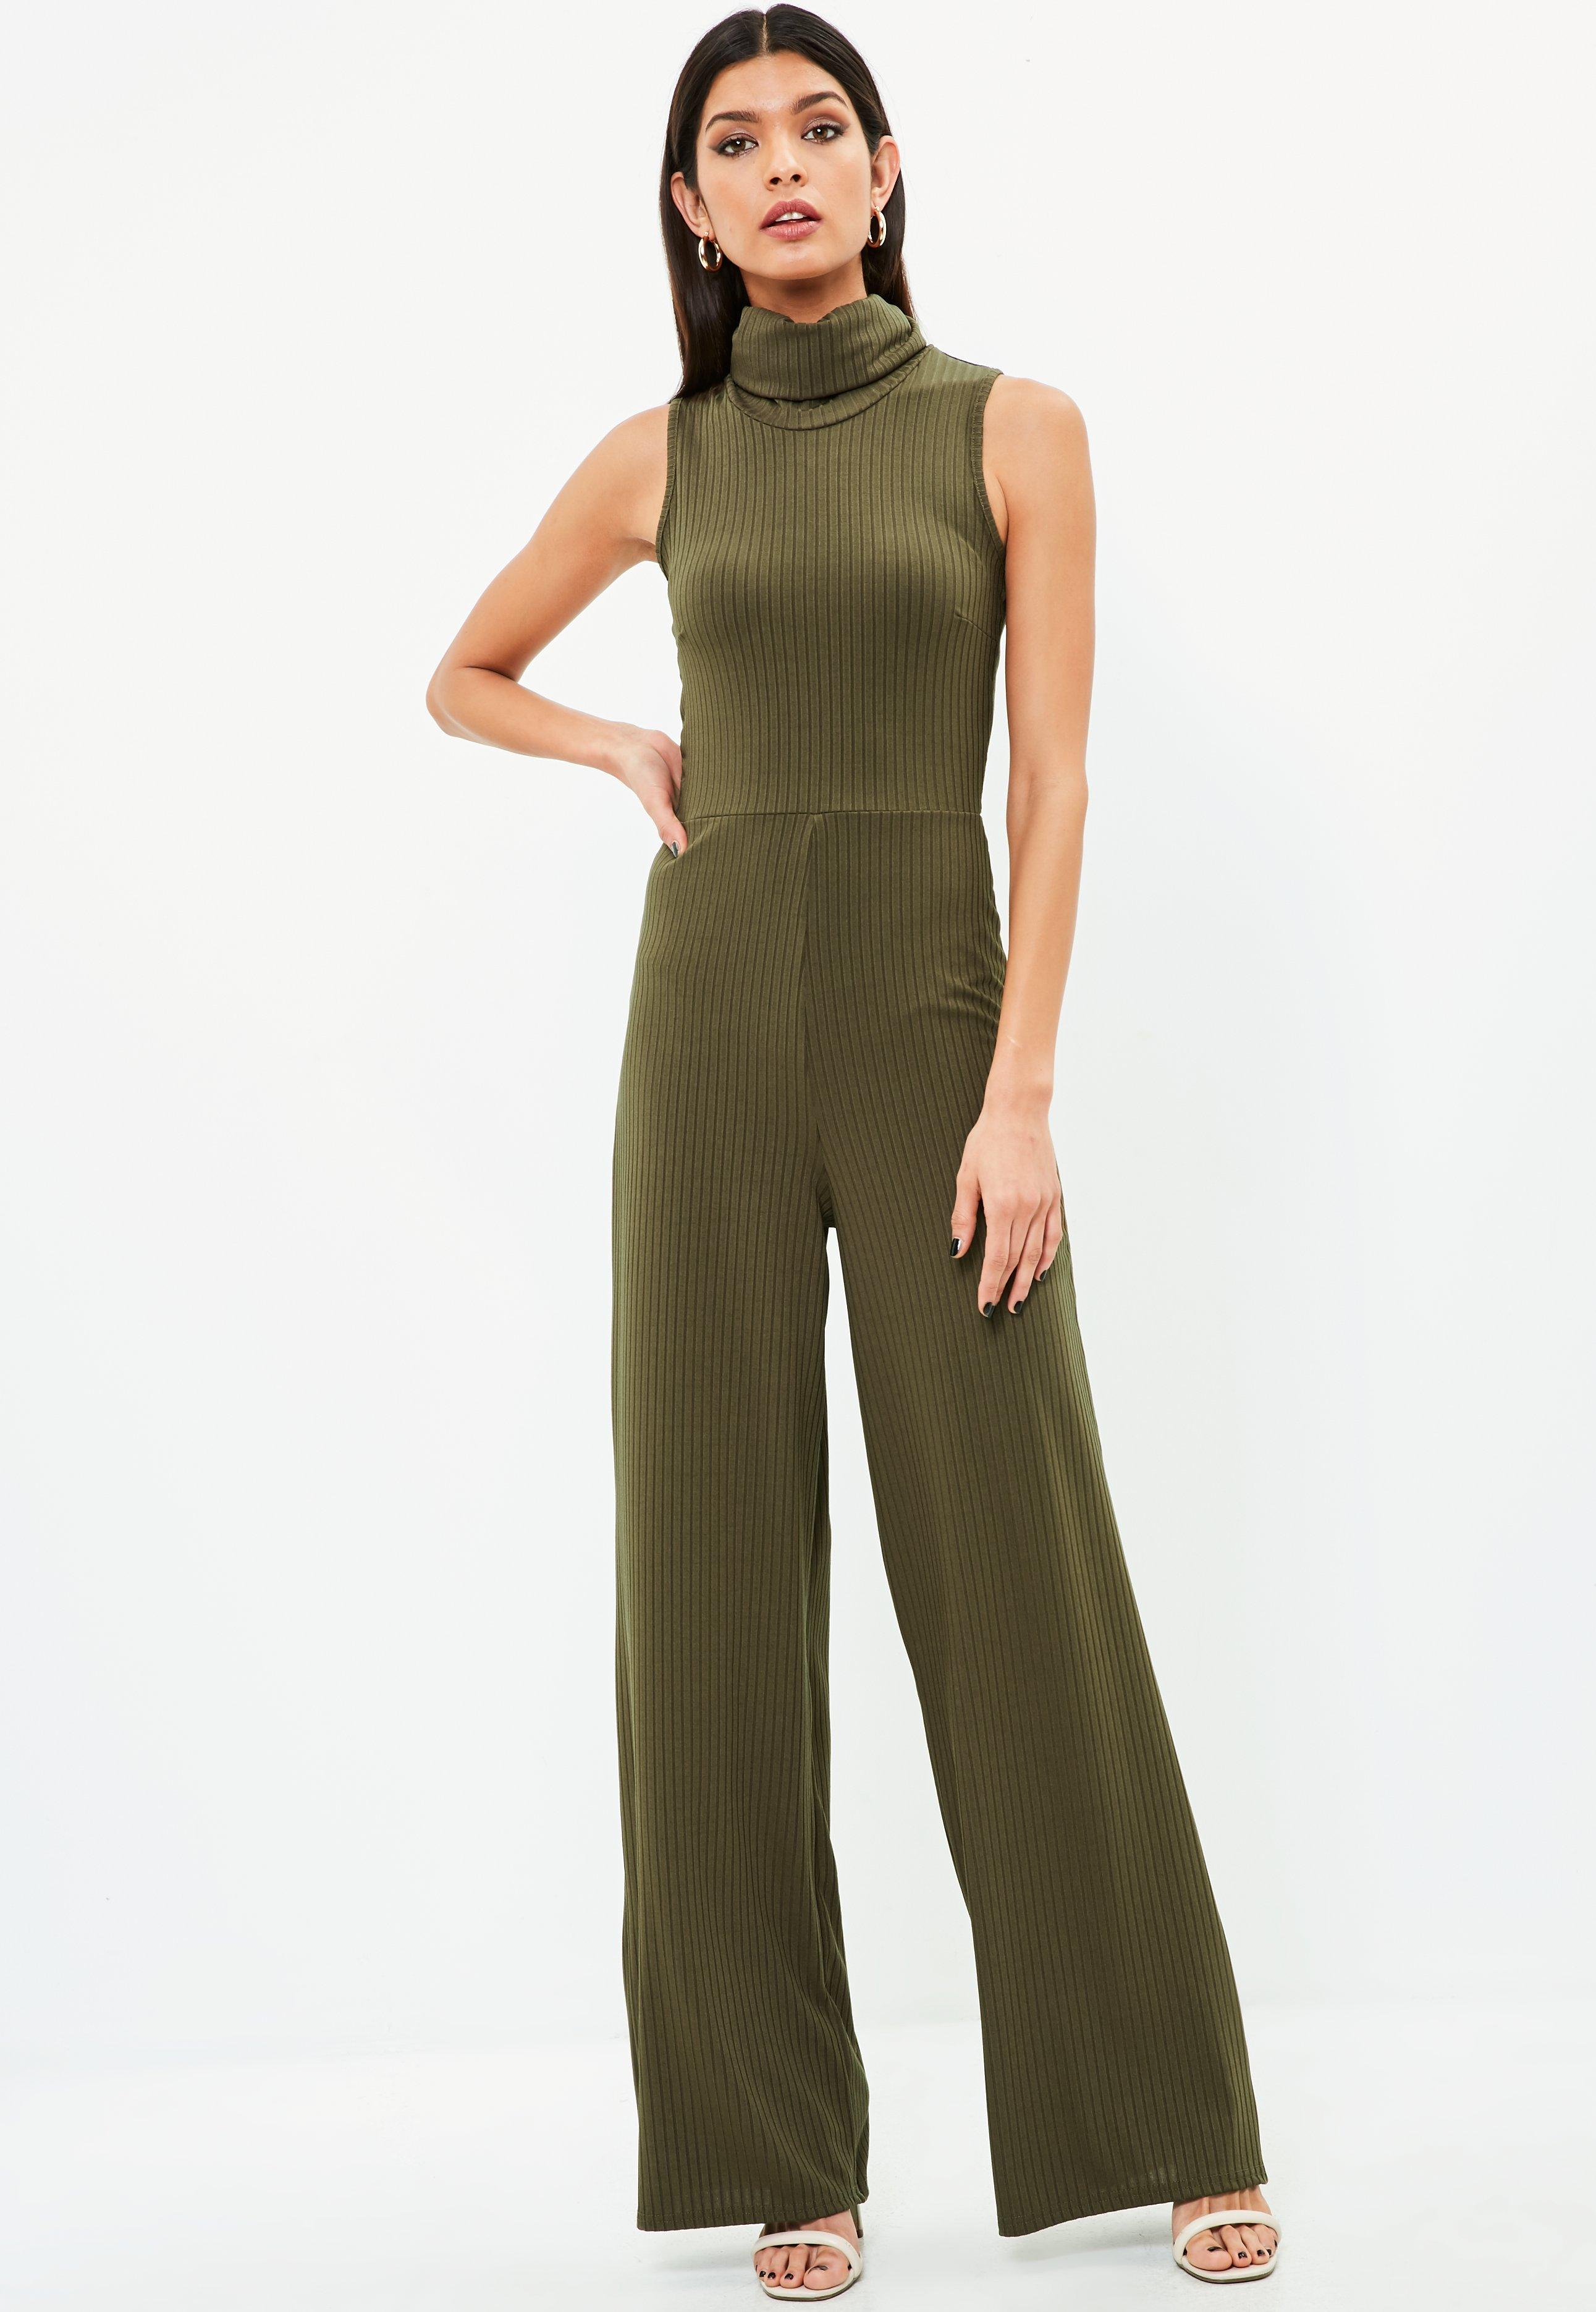 7b375e30dbb Lyst - Missguided Khaki Roll Neck Sleeveless Kick Flare Jumpsuit